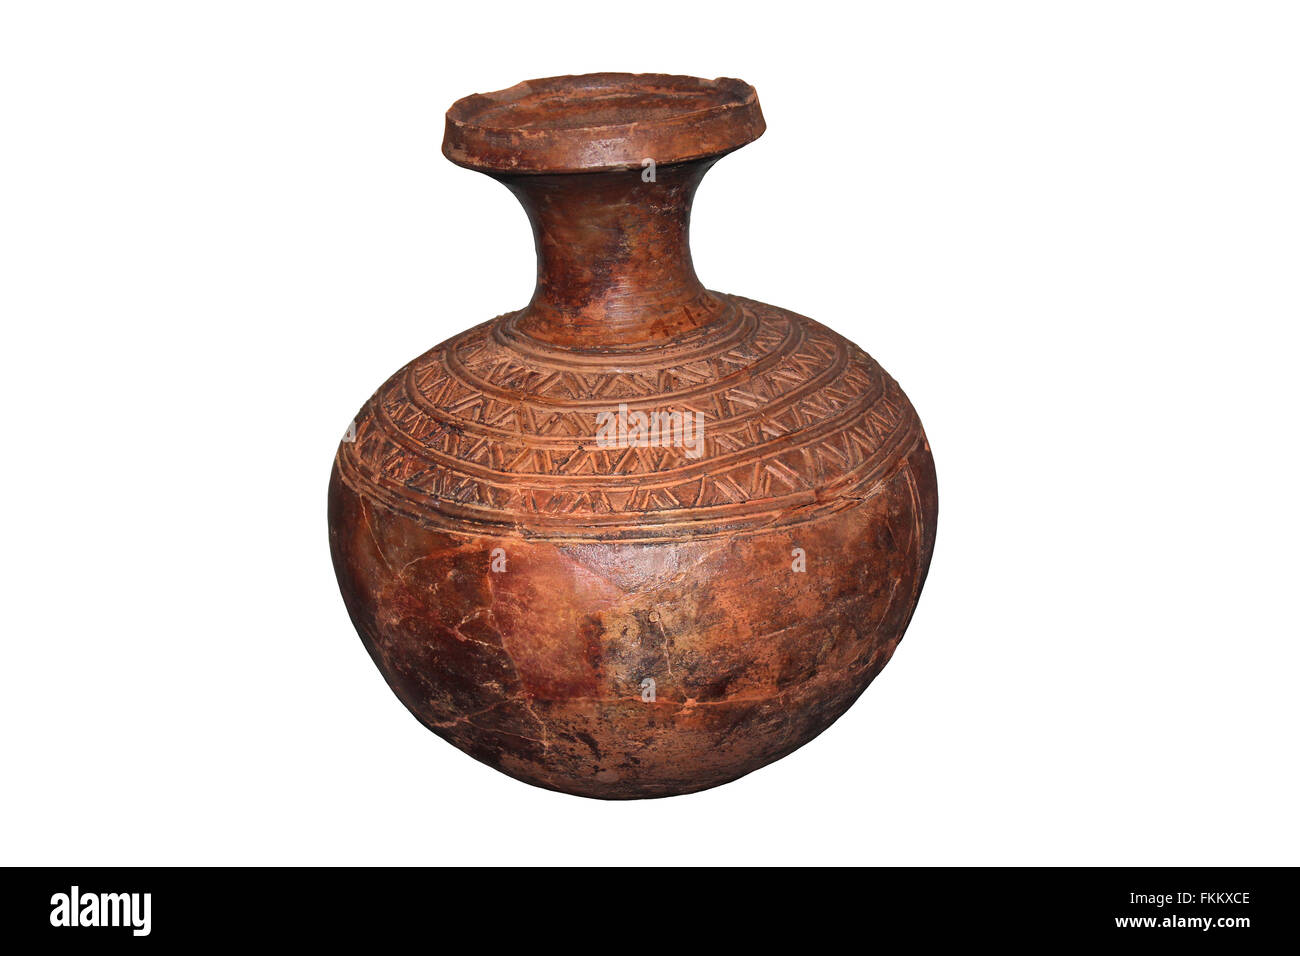 Water Pot, Yoruba, early 20th Century, Llorin, Nigeria, West Africa - Stock Image